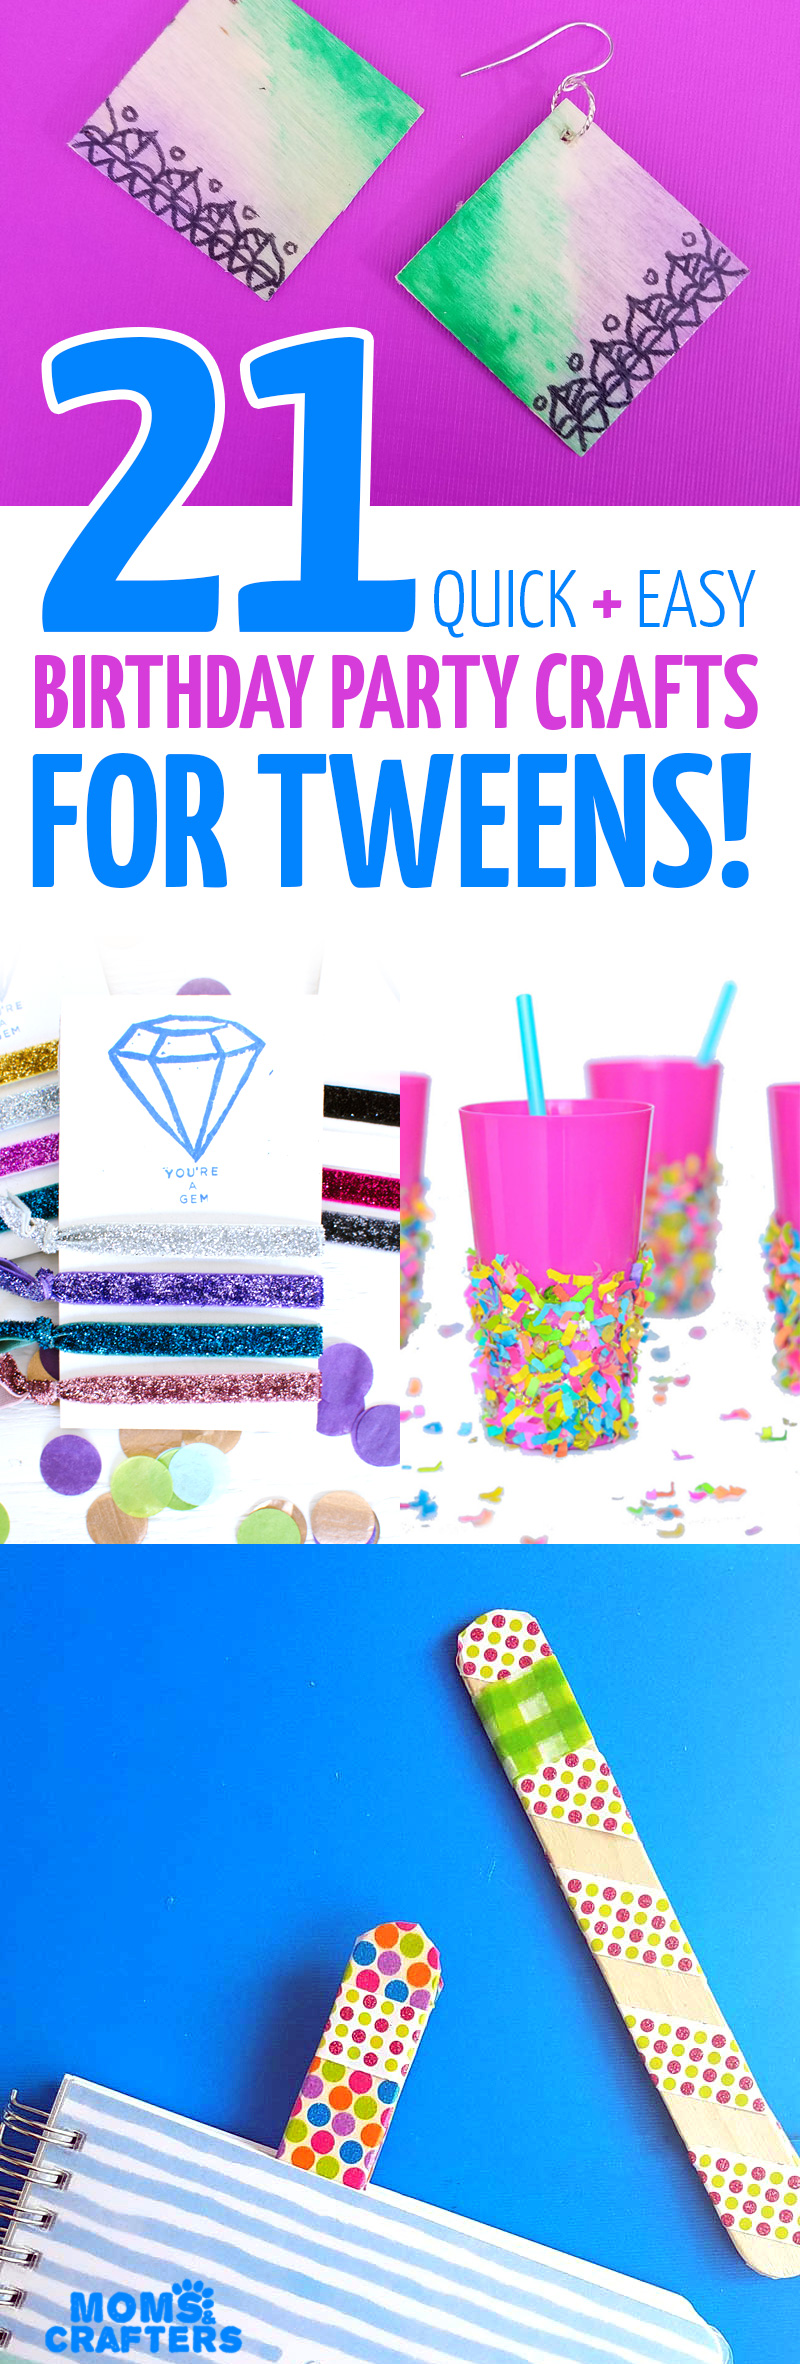 These Cool And Easy DIY Ideas Are The Perfect Birthday Party Crafts For Tweens Teens